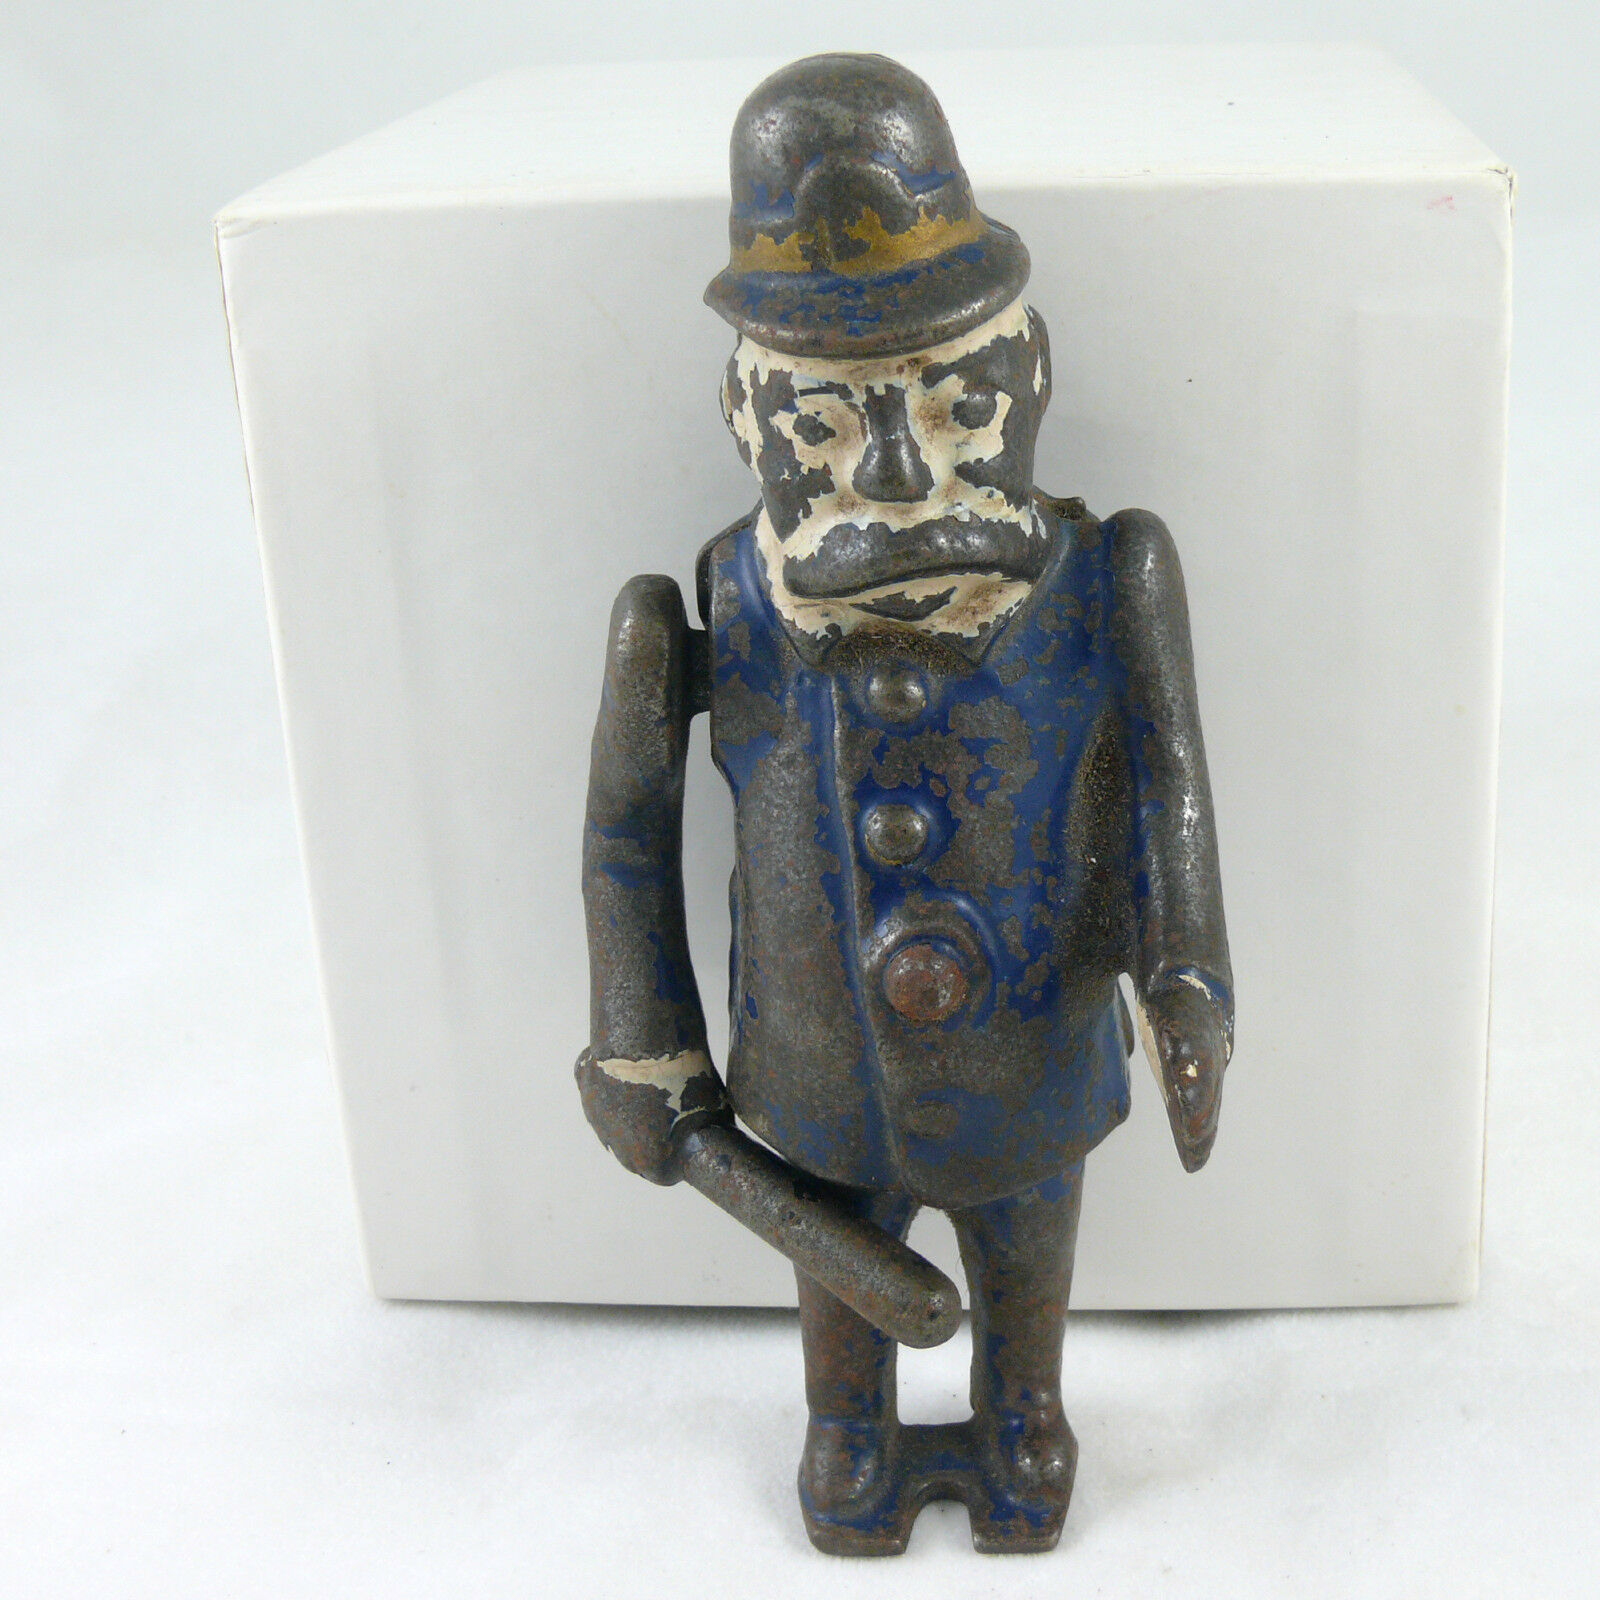 1910 LARGE HAPPY HOOLIGAN PATROL POLICEMAN IRON FIGURE FOR COMIC CHARACTER TOY